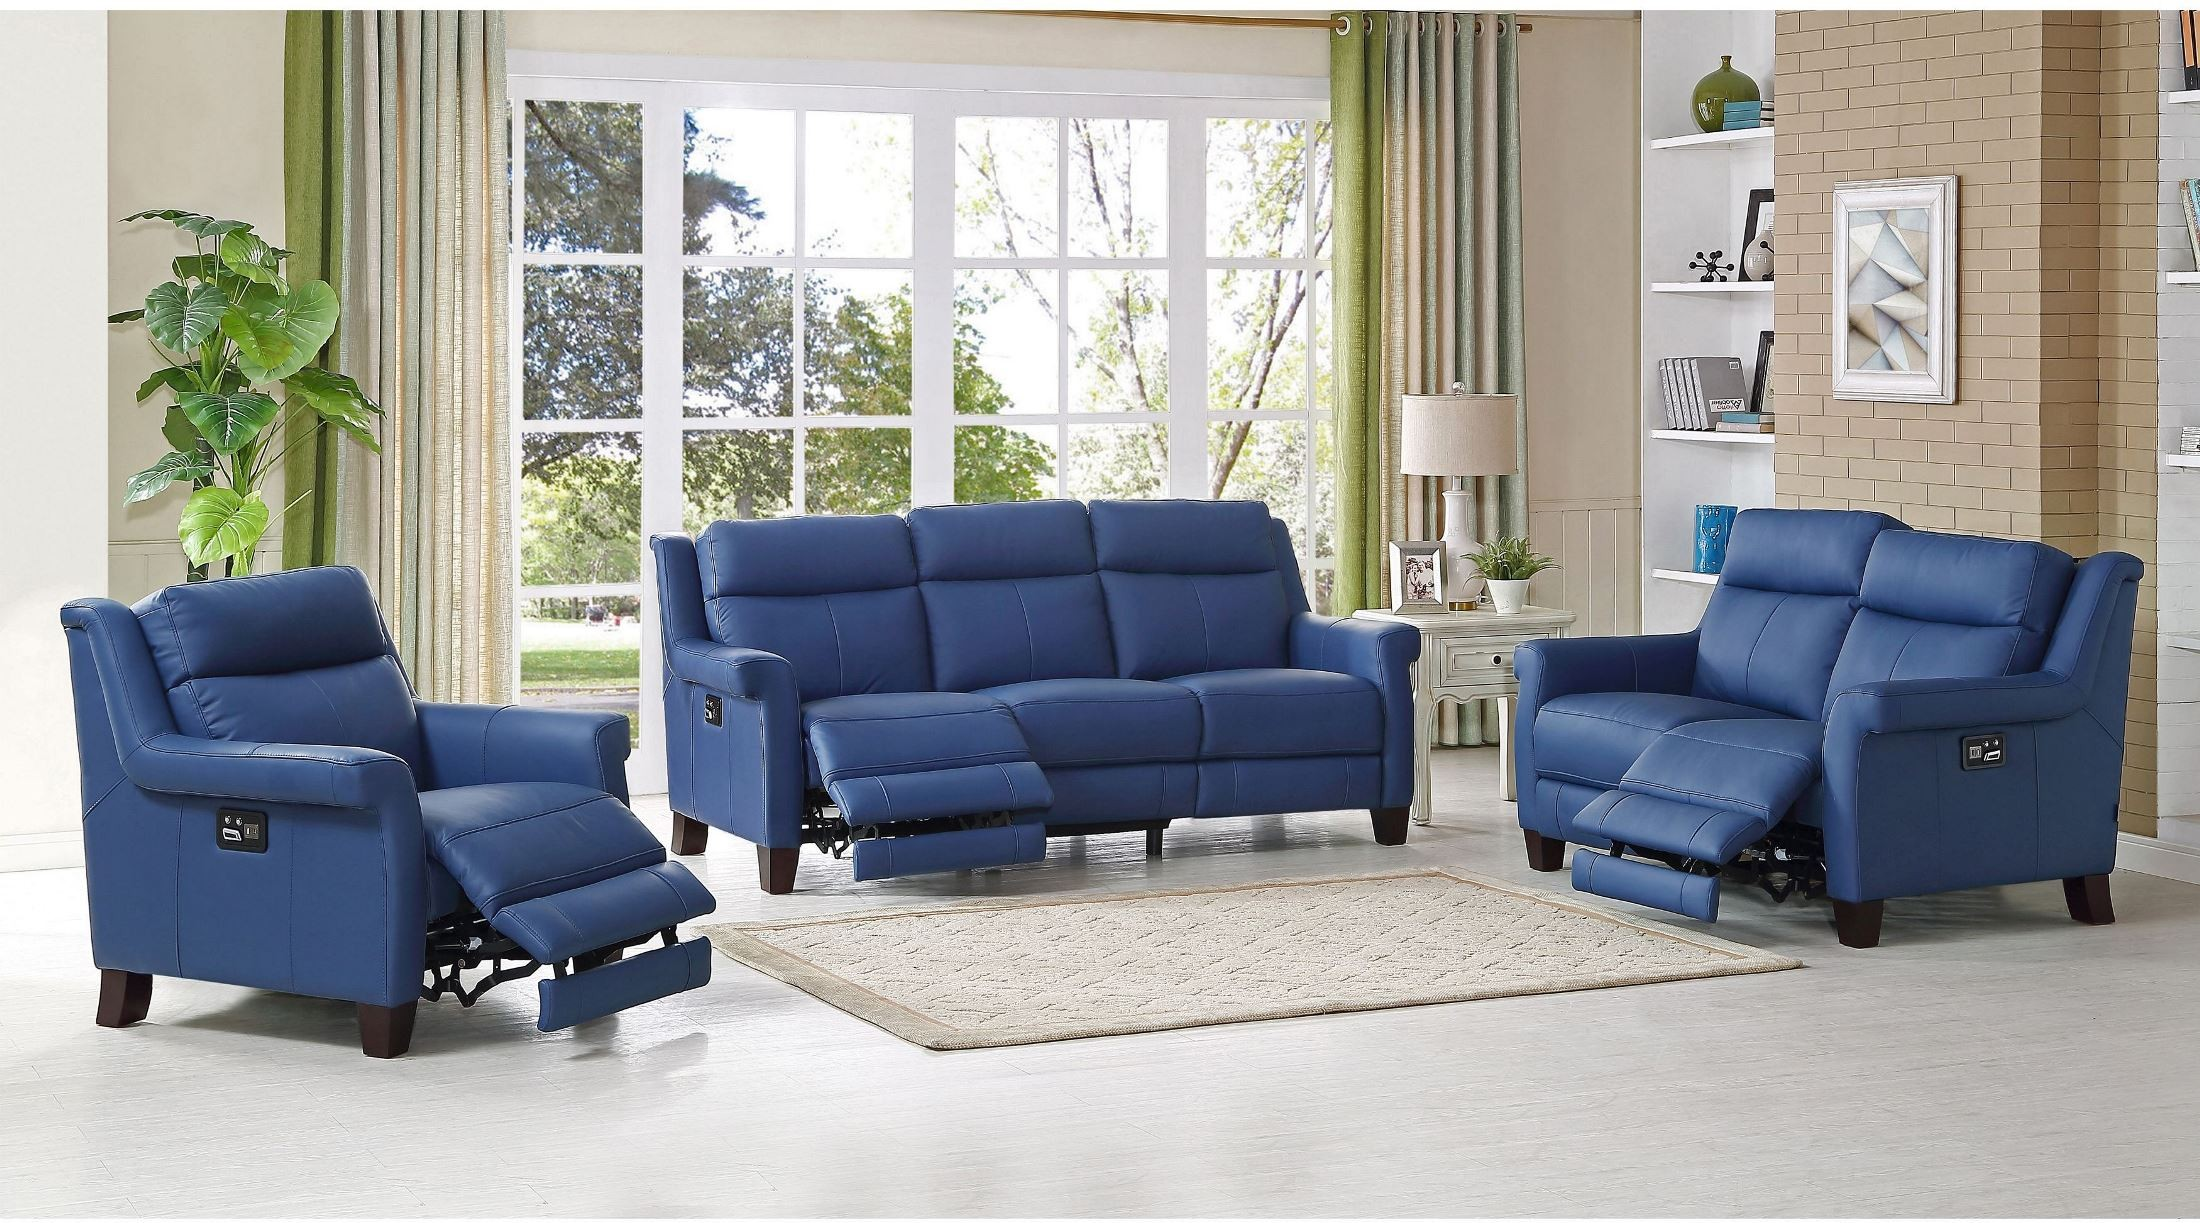 Blue Living Room Chairs Dolce Blue Power Reclining Living Room Set From Amax